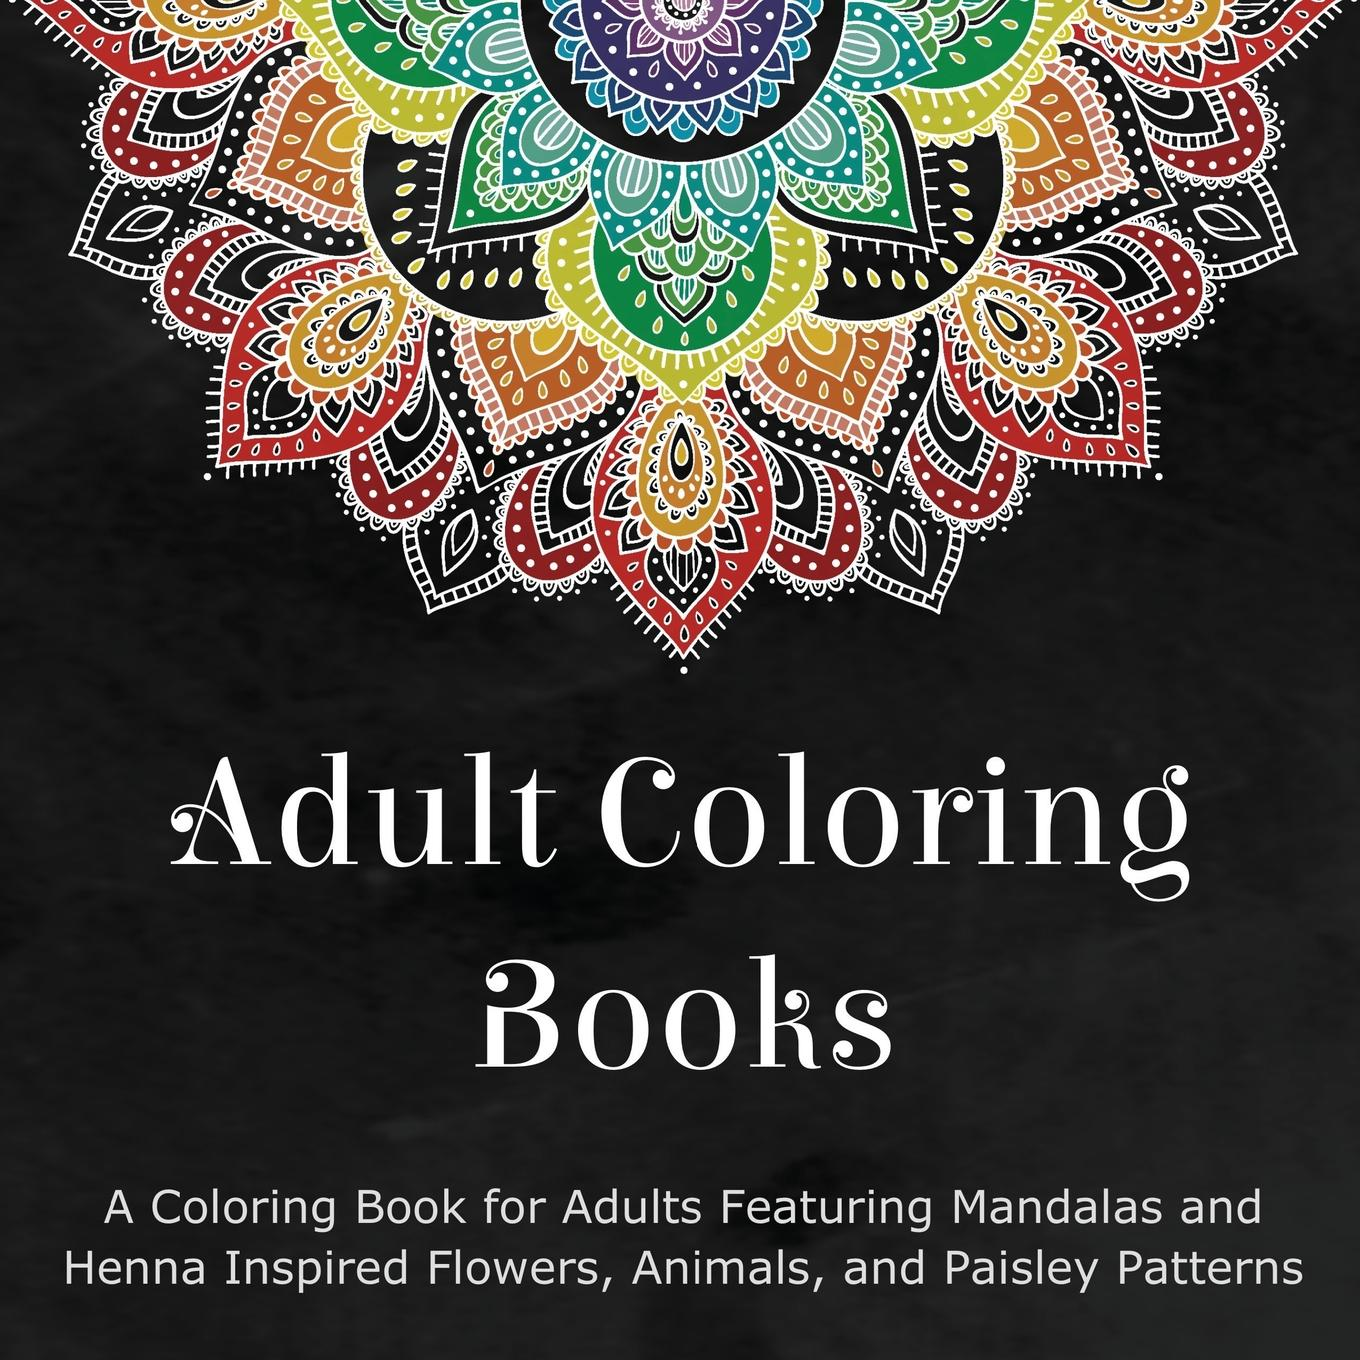 Adult Coloring Books: A Coloring Book for Adults Featuring Mandalas and Henna Inspired Flowers, Animals, and Paisley Patterns (Paperback)